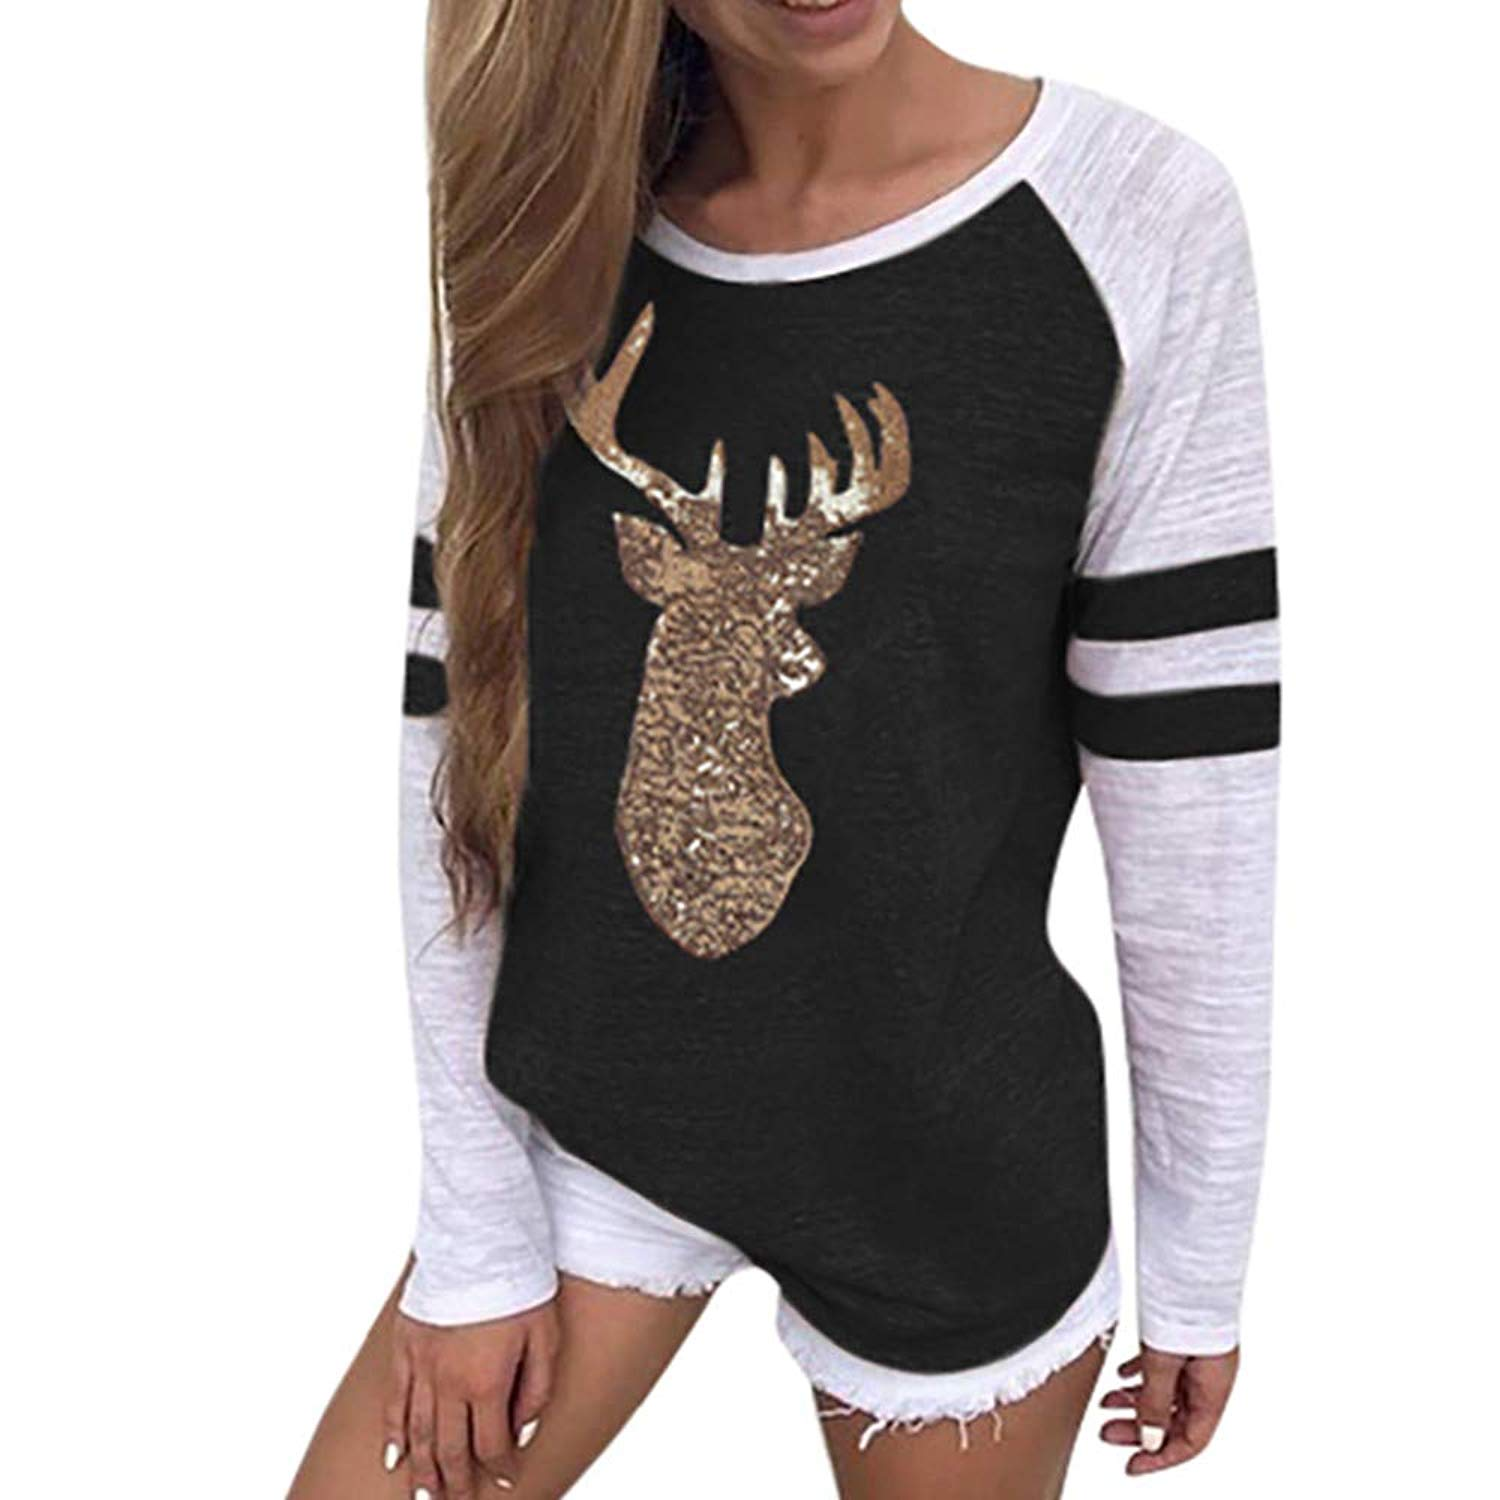 0958fa95a838d Get Quotations · POTO Shirts for Women Clearance